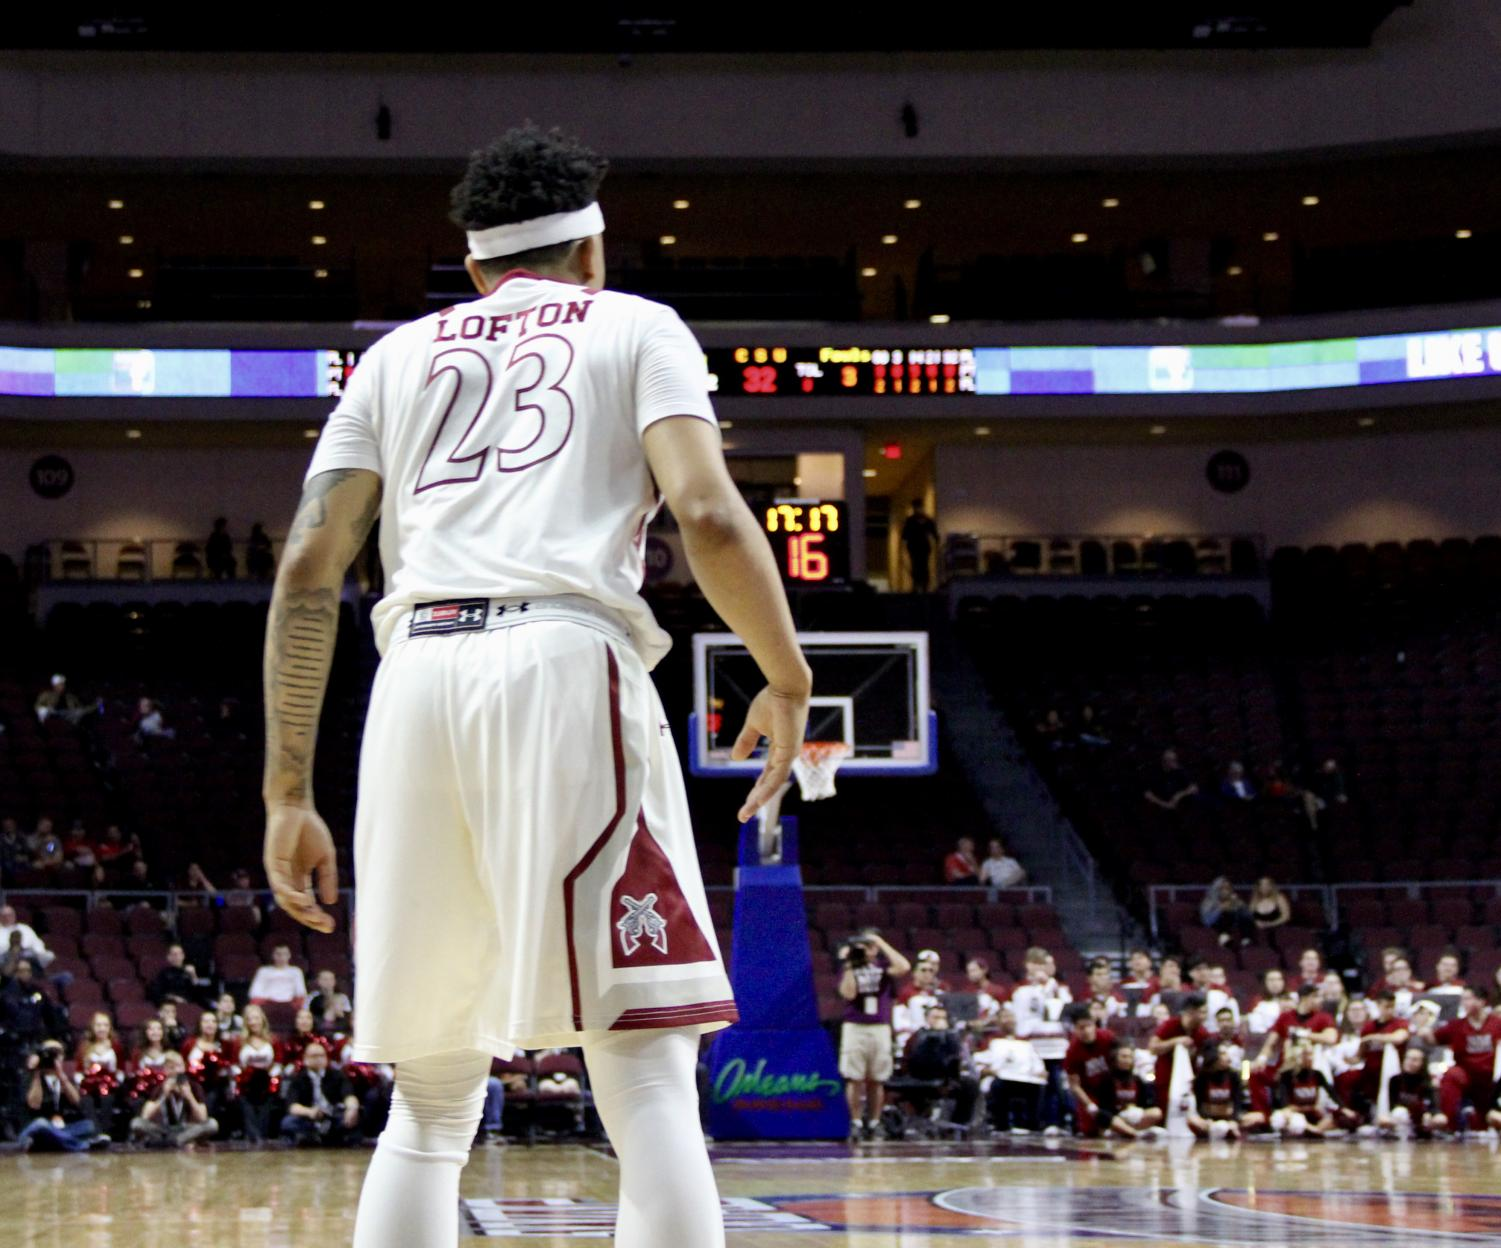 NMSU guard Zach Lofton finished the WAC semifinal game with 31 points; his team will now head to the WAC Championship.